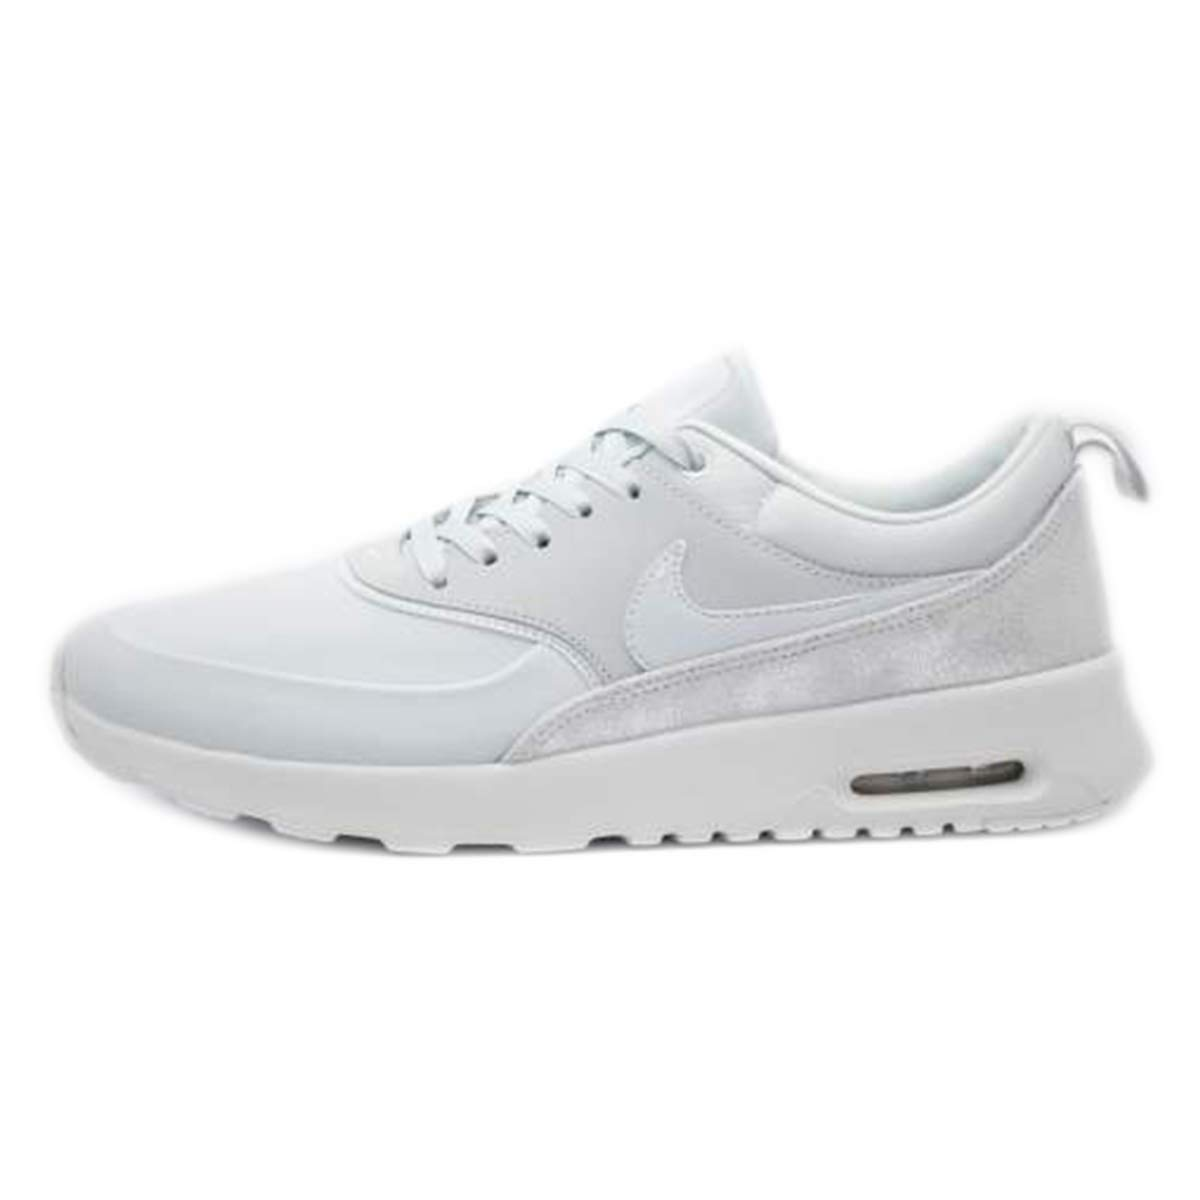 more photos fcaf2 38959 Galleon - NIKE Women s Air Max Thea PRM Pure Platinum Pure Platinum Running  Shoe 6.5 Women US